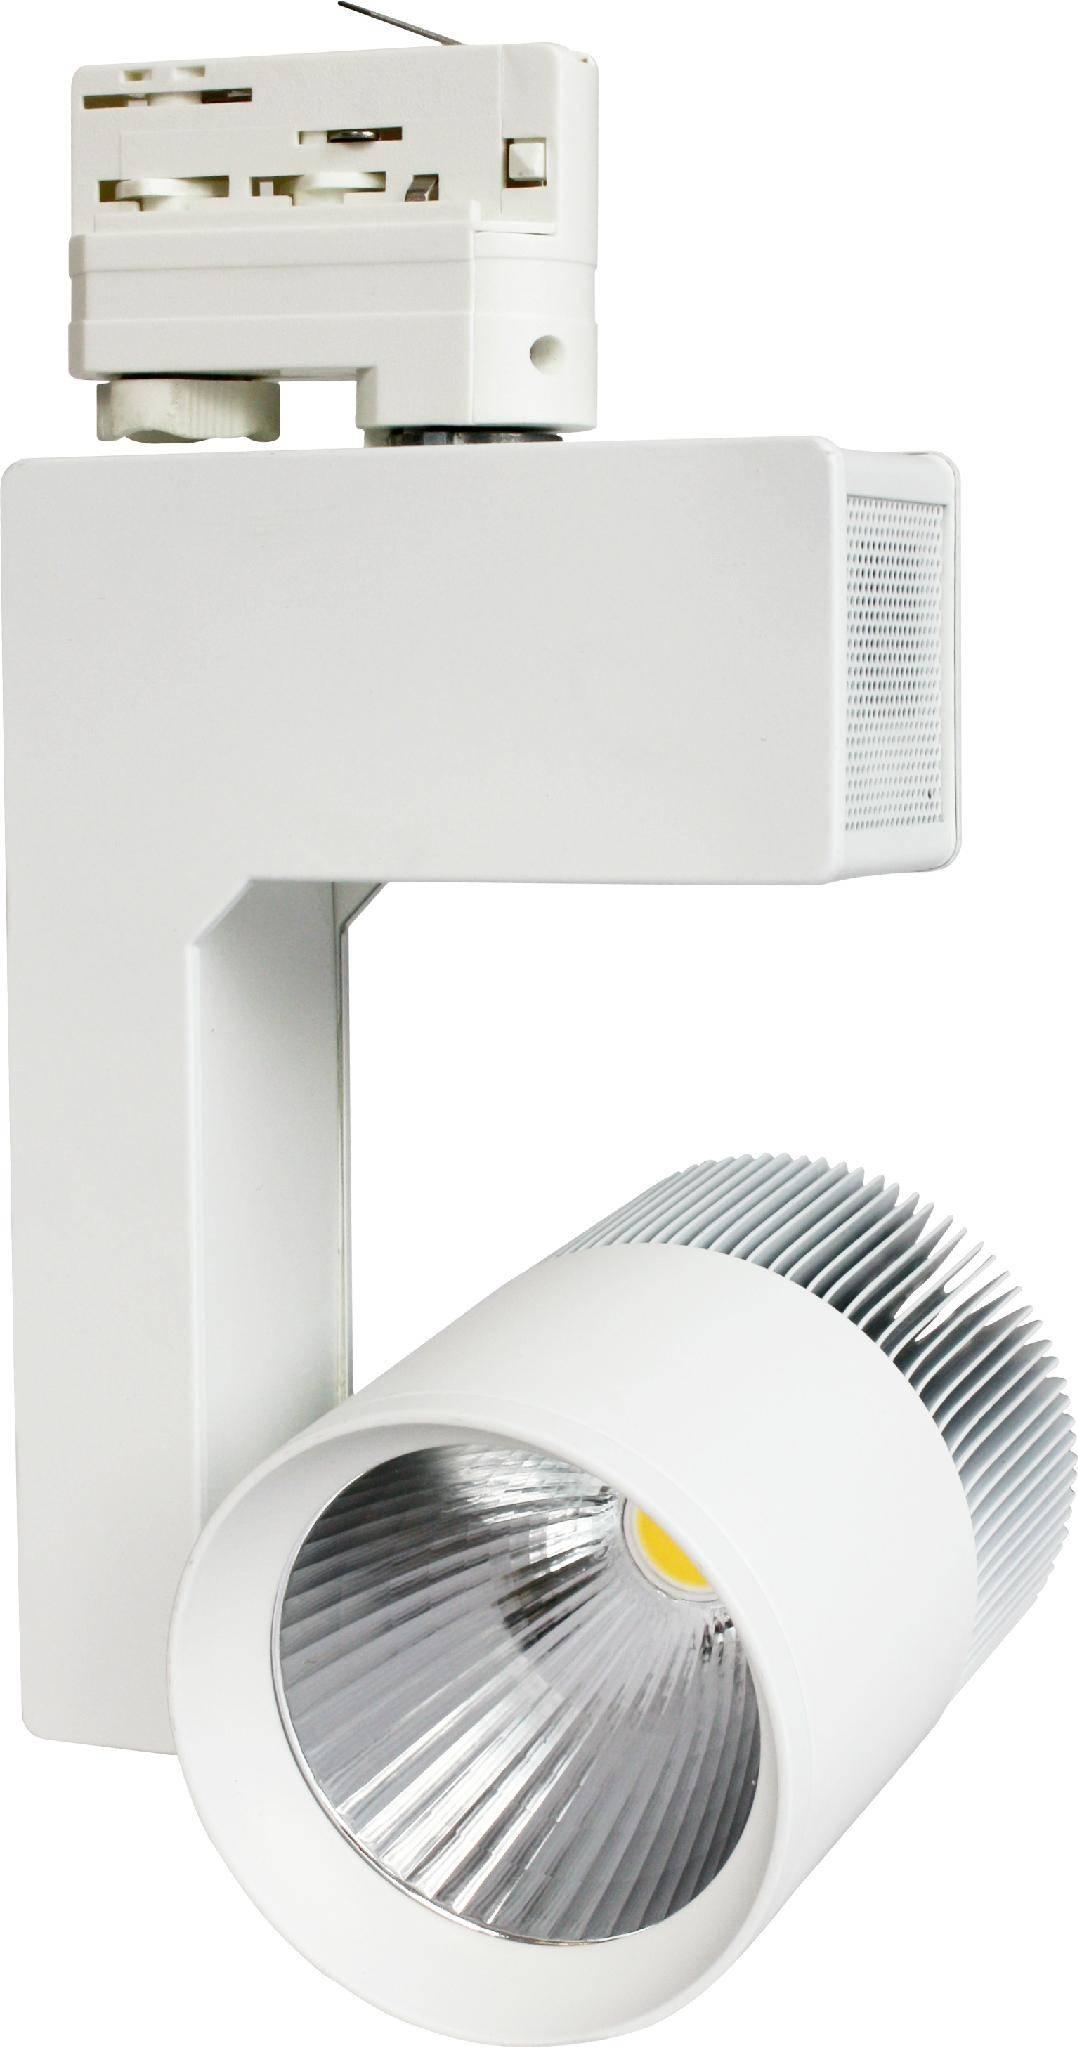 Best-selling LED track light for shops,commercial lighting